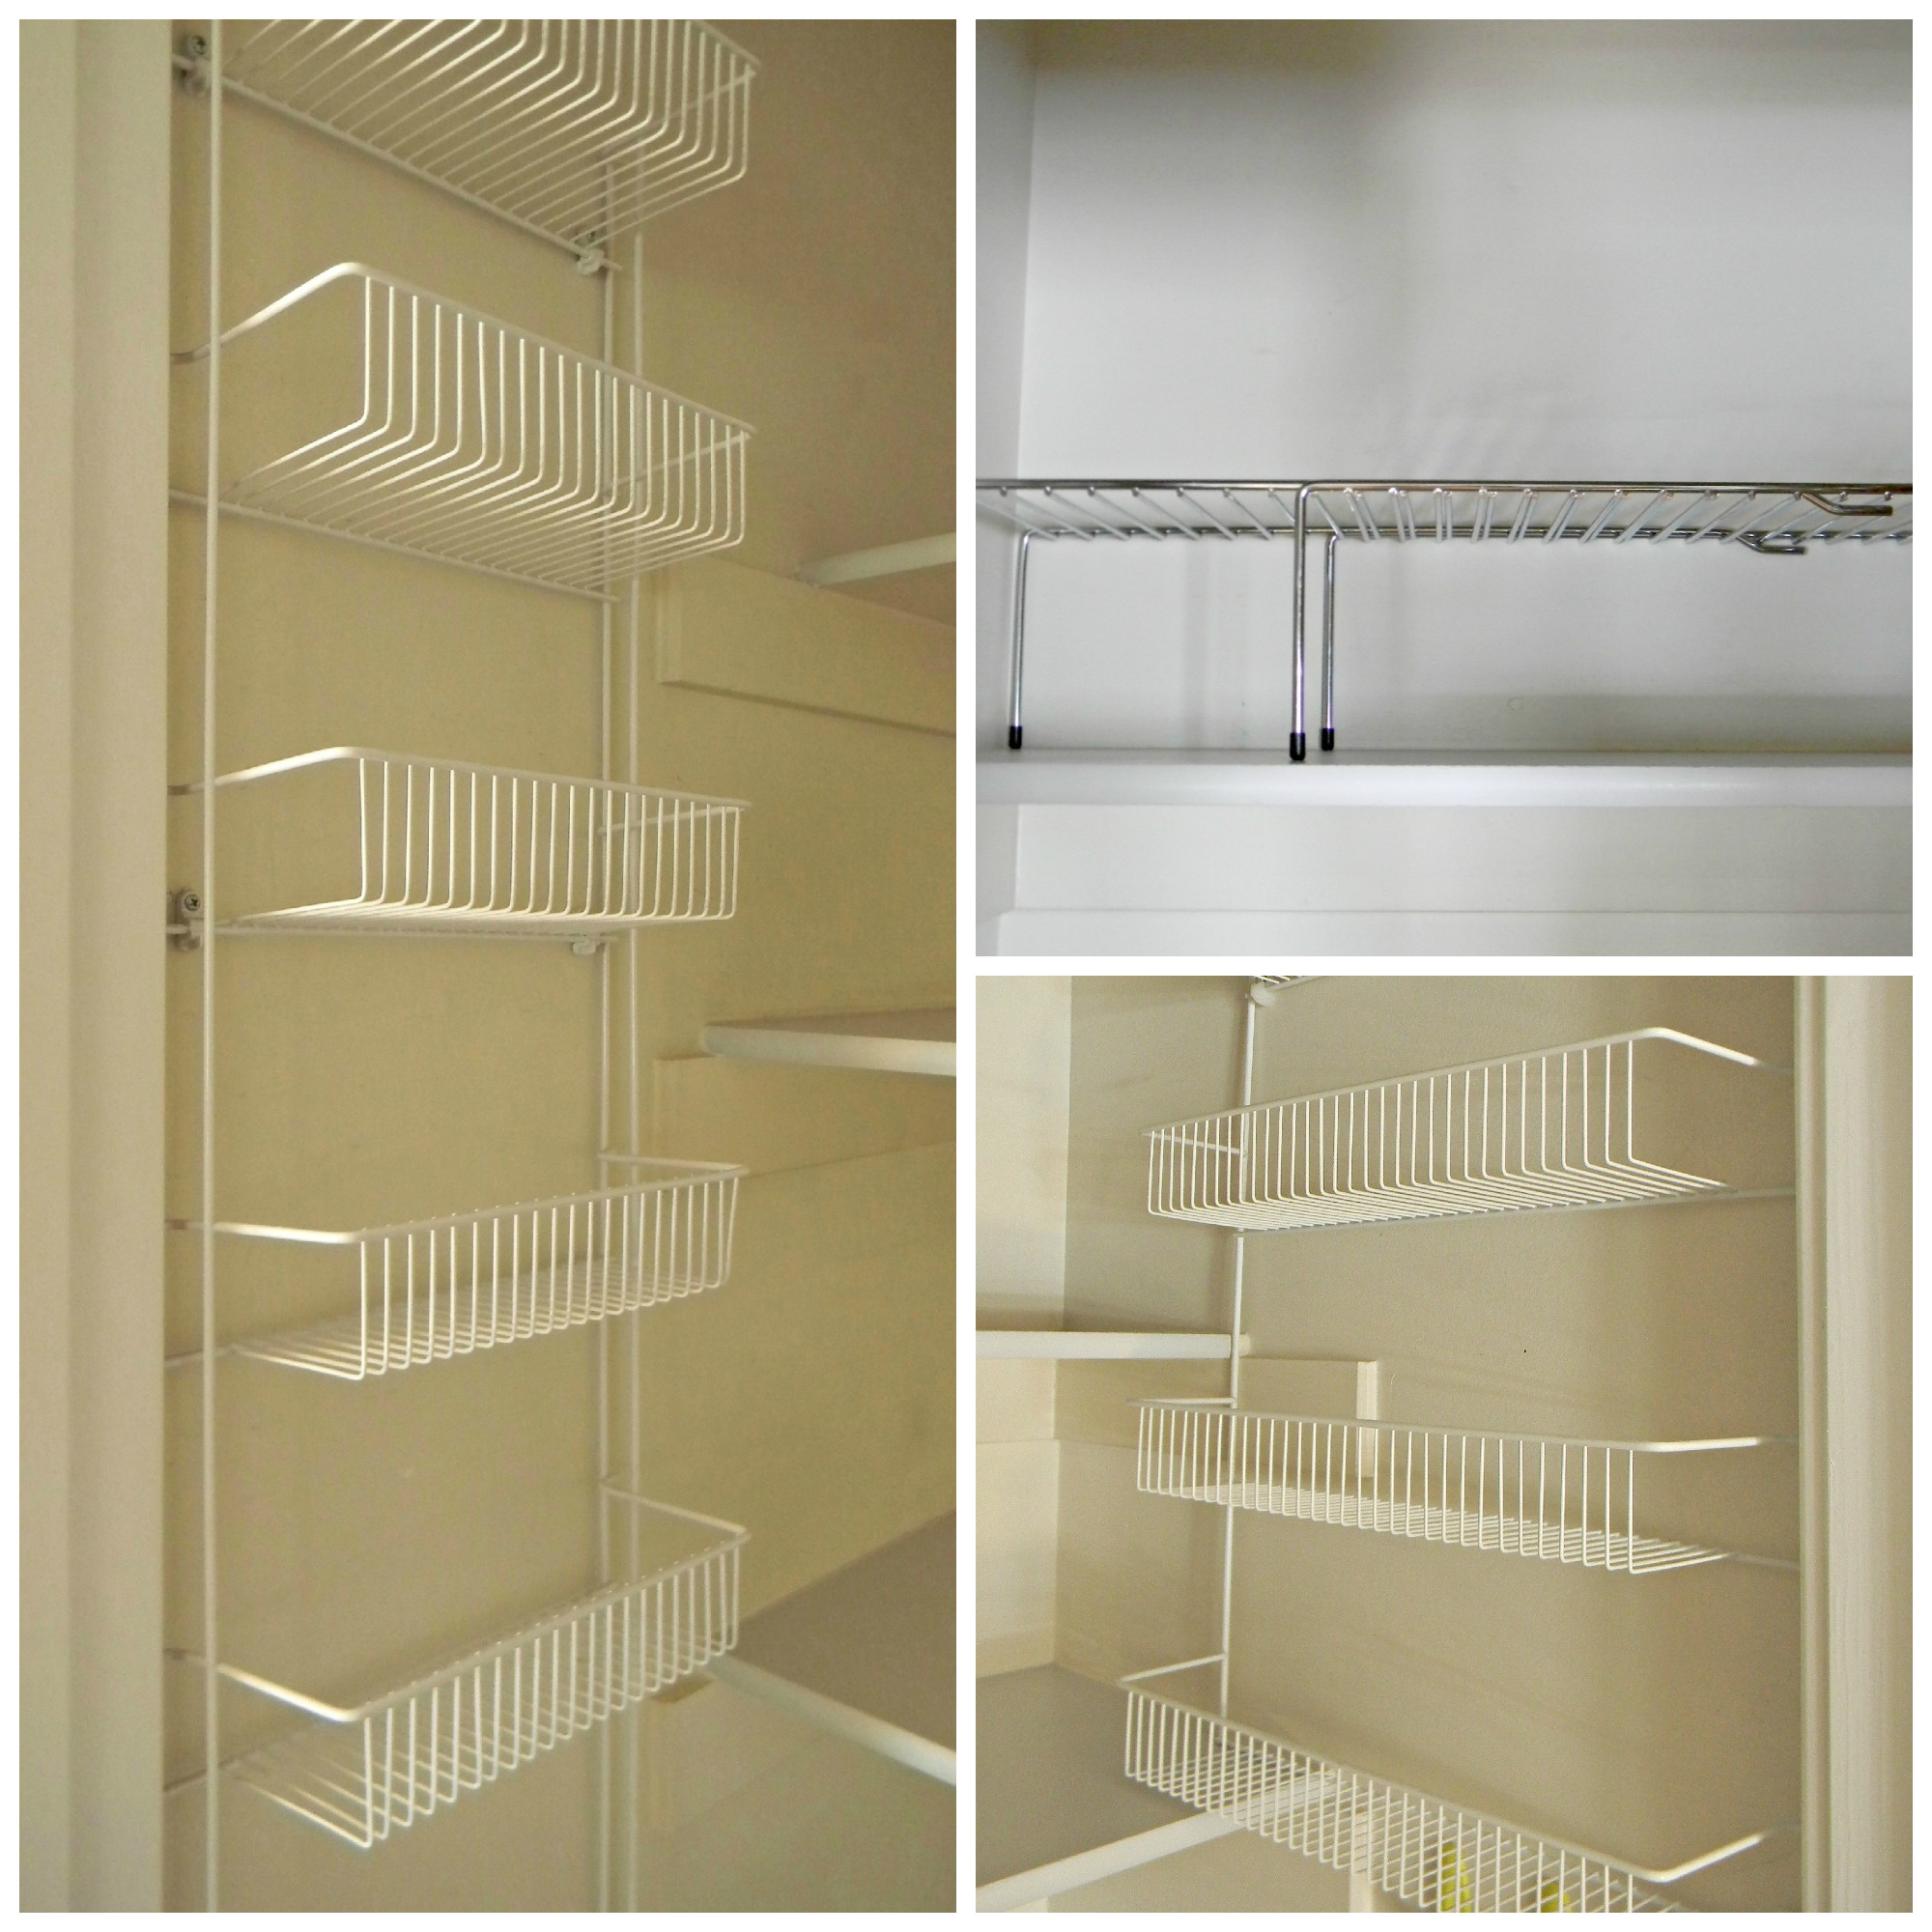 Remarkable Wire Shelving Pantry 2000 x 2000 · 635 kB · jpeg